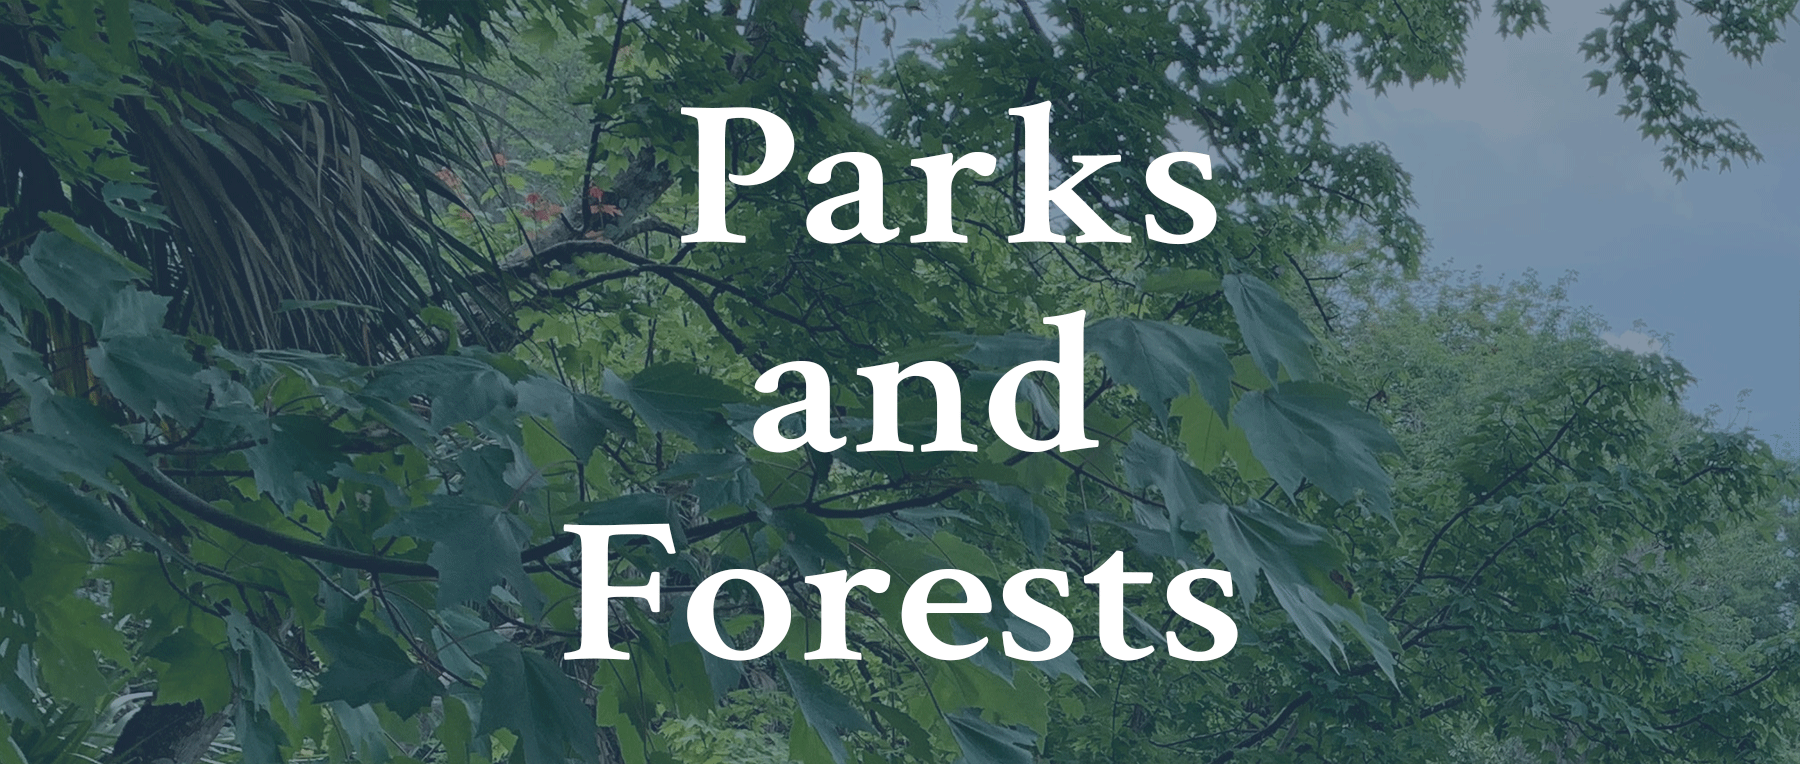 Click for Parks and Forests